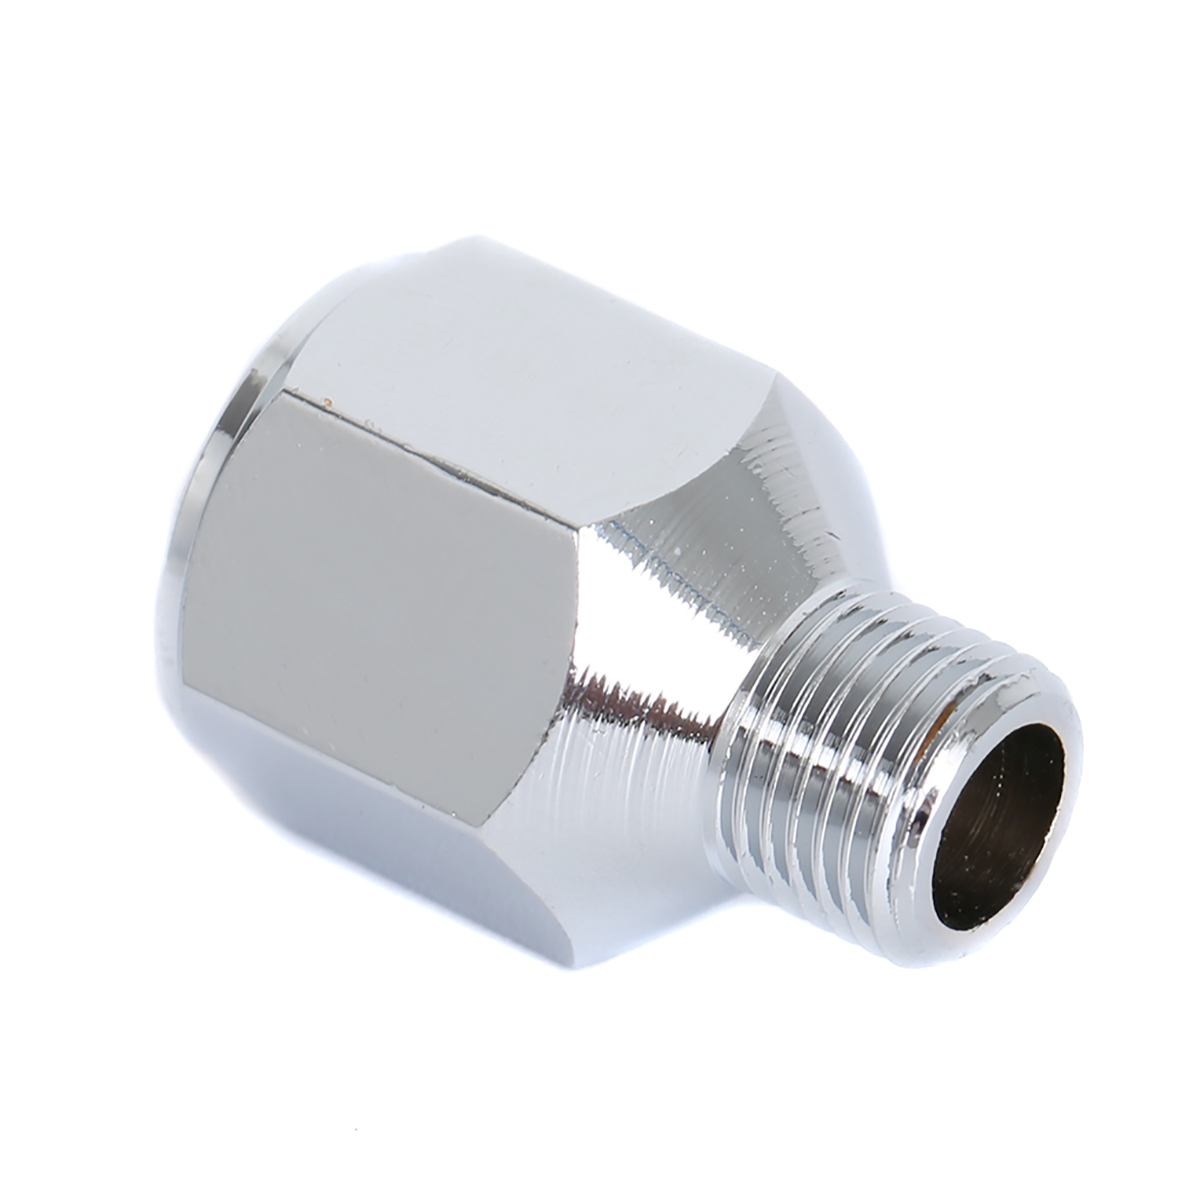 Airbrush Air Hose Adaptor Fitting Connector 1/4 BSP Female to 1/8 BSP Male Airbrush Hose Adapter Sprayer Tool Accessories